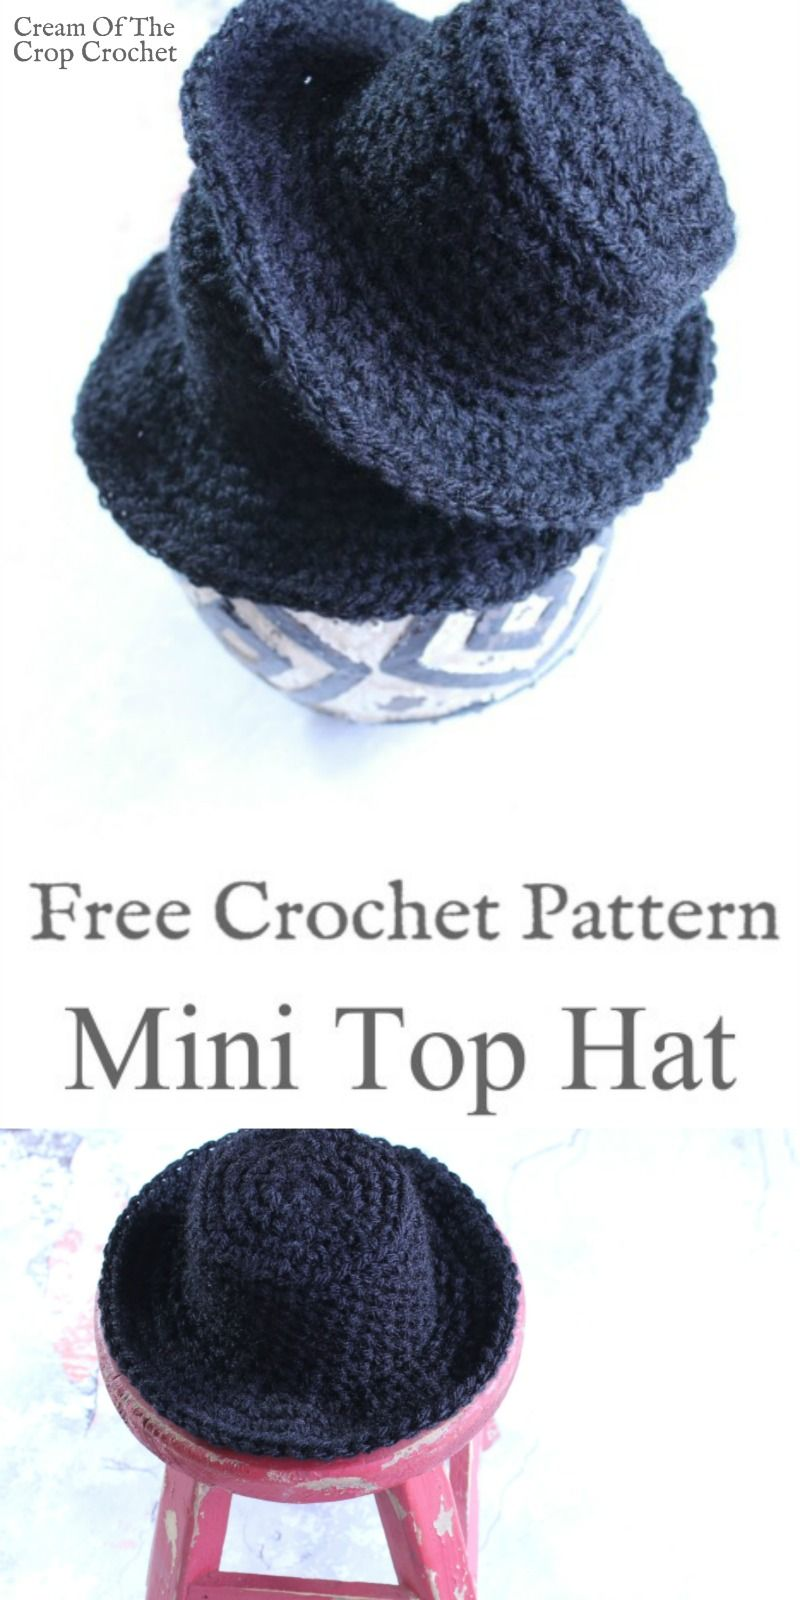 Mini Top Hat Crochet Pattern | Cream Of The Crop Crochet | Crochet ...